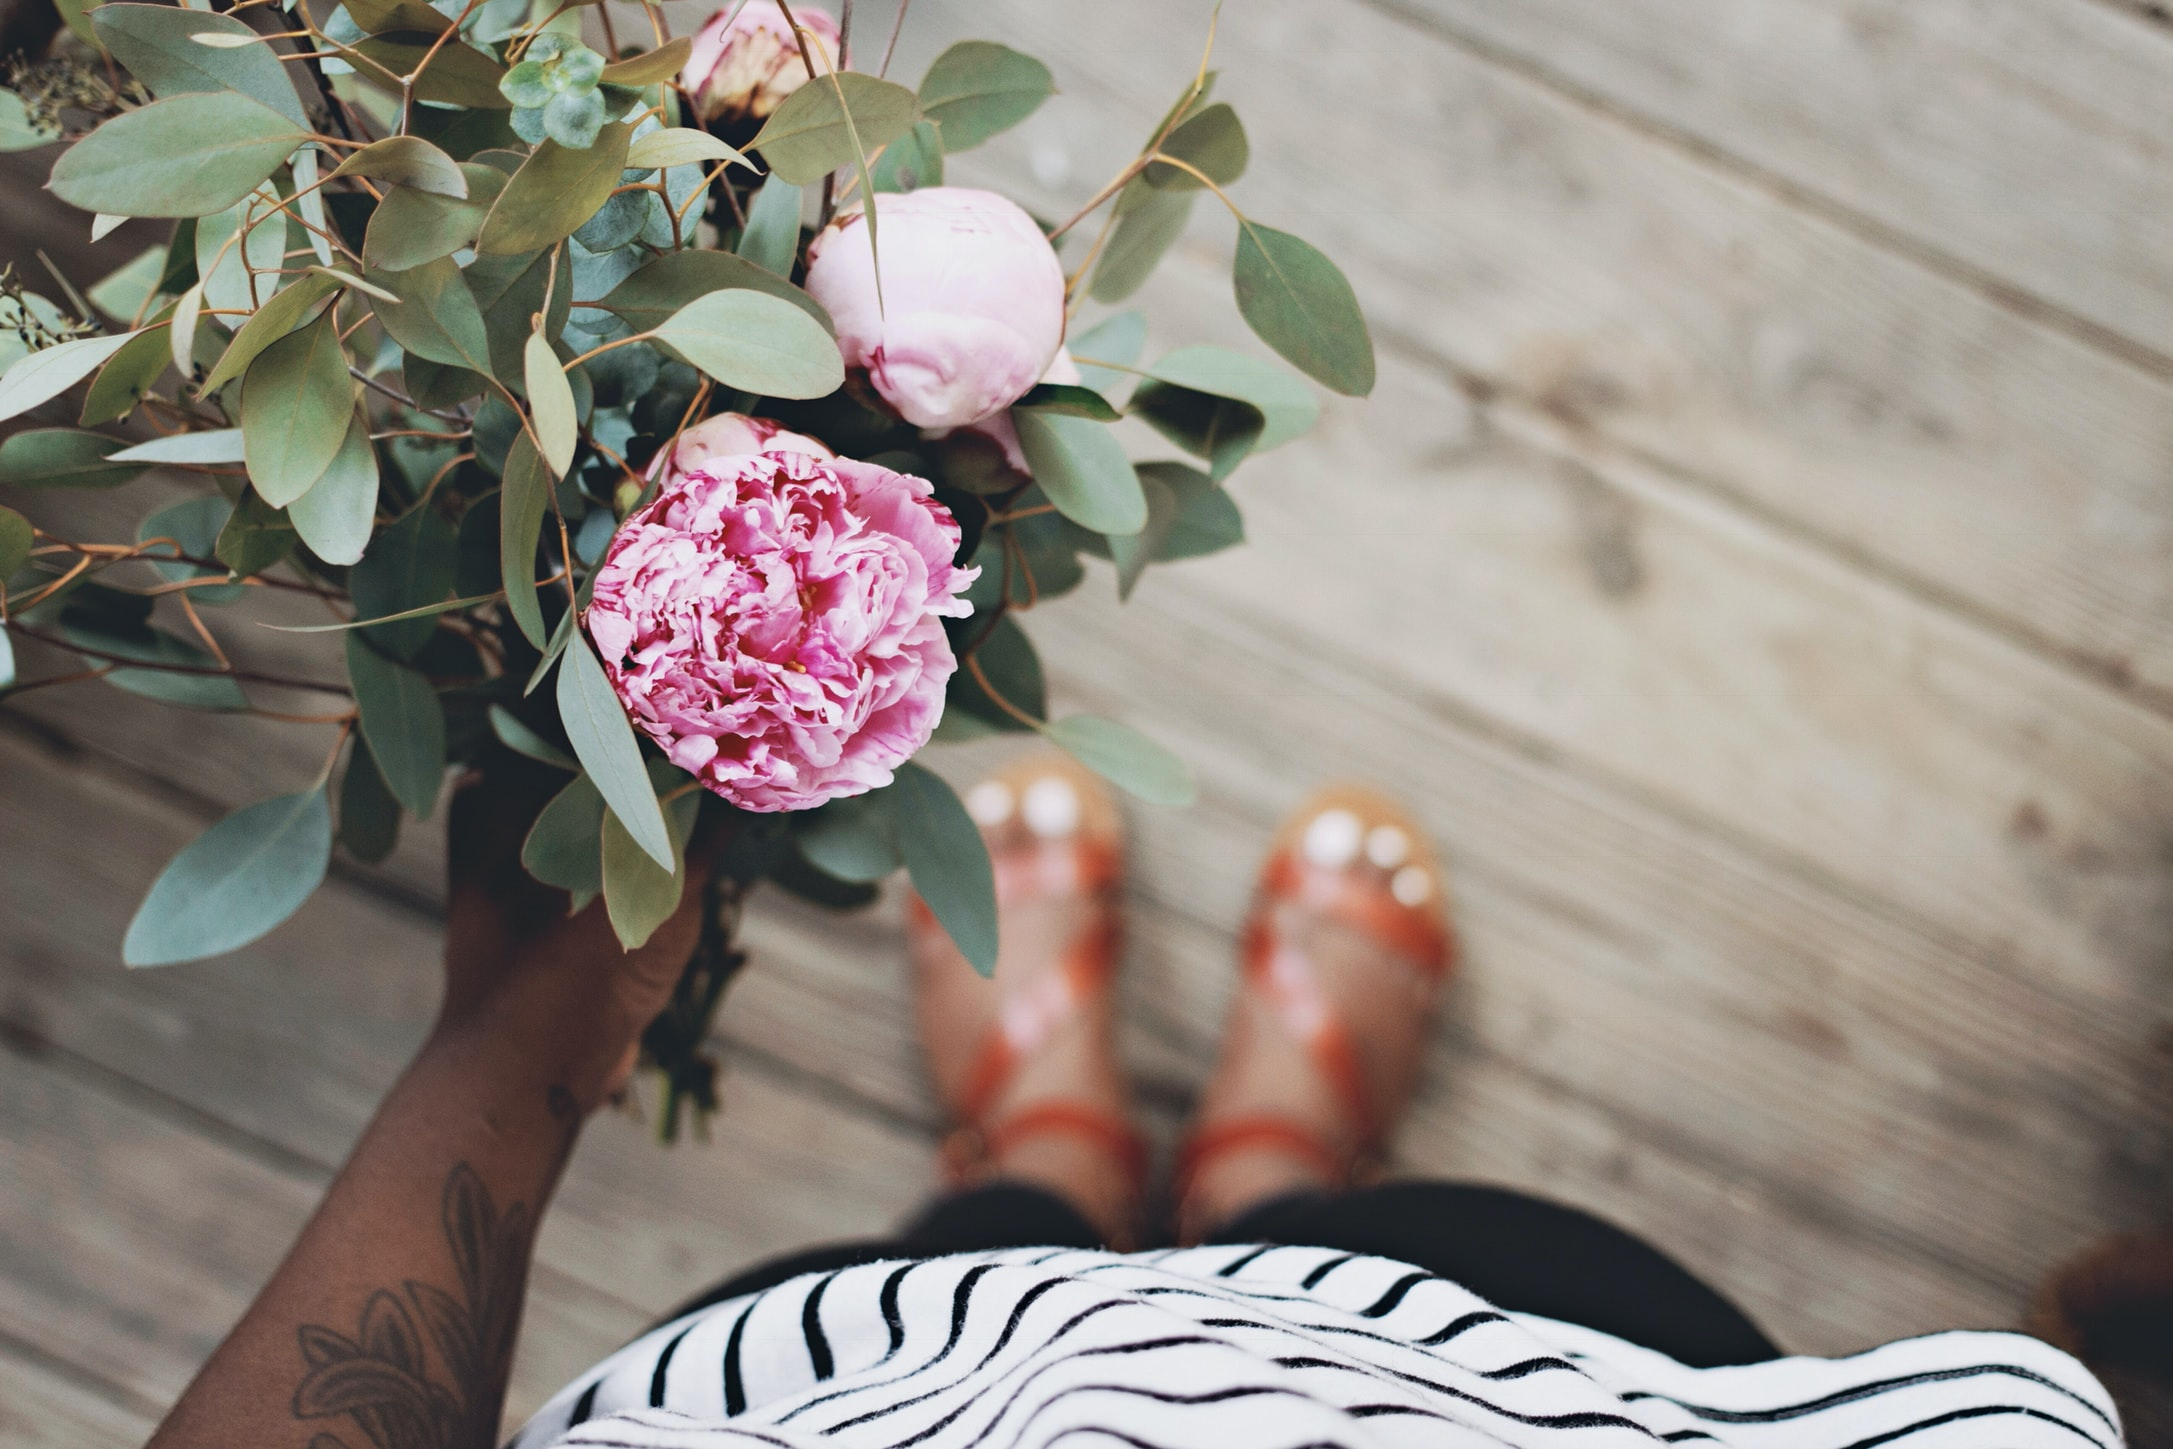 Woman with flower tattoos and sandals holding a bouquet of flowers while standing on wooden floor